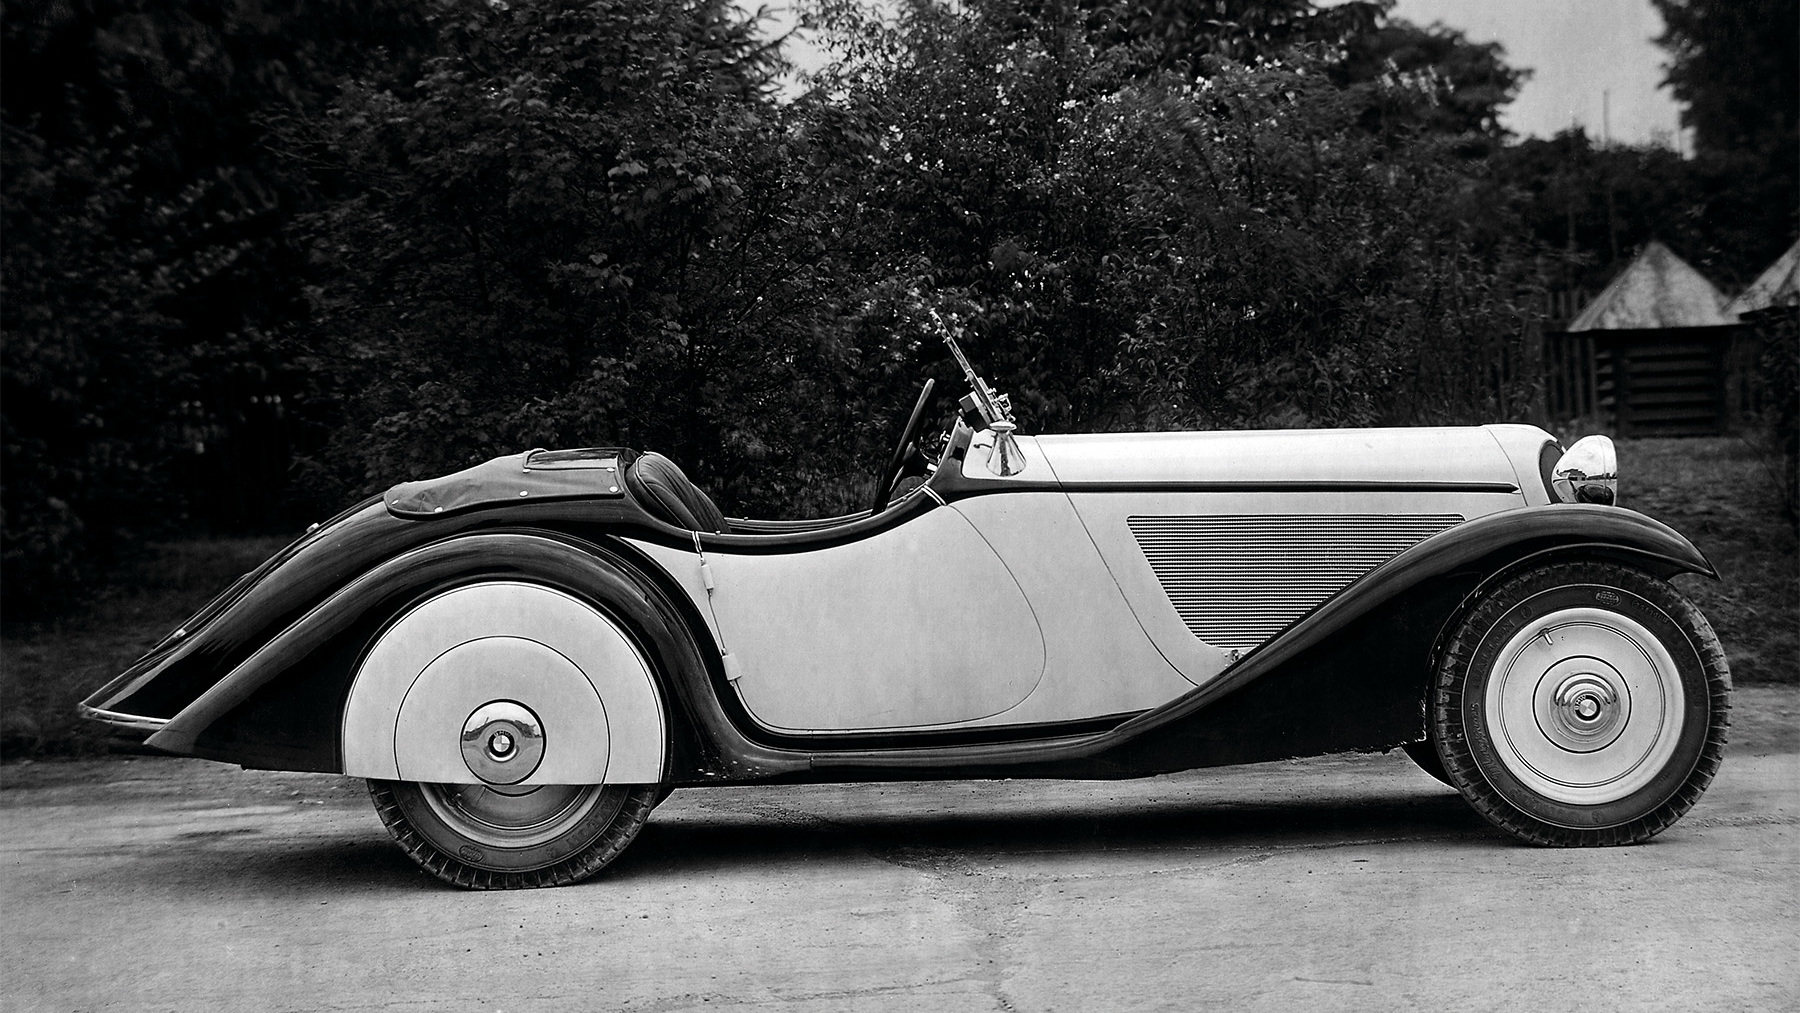 bmw celebrates 75 years roadster production 019